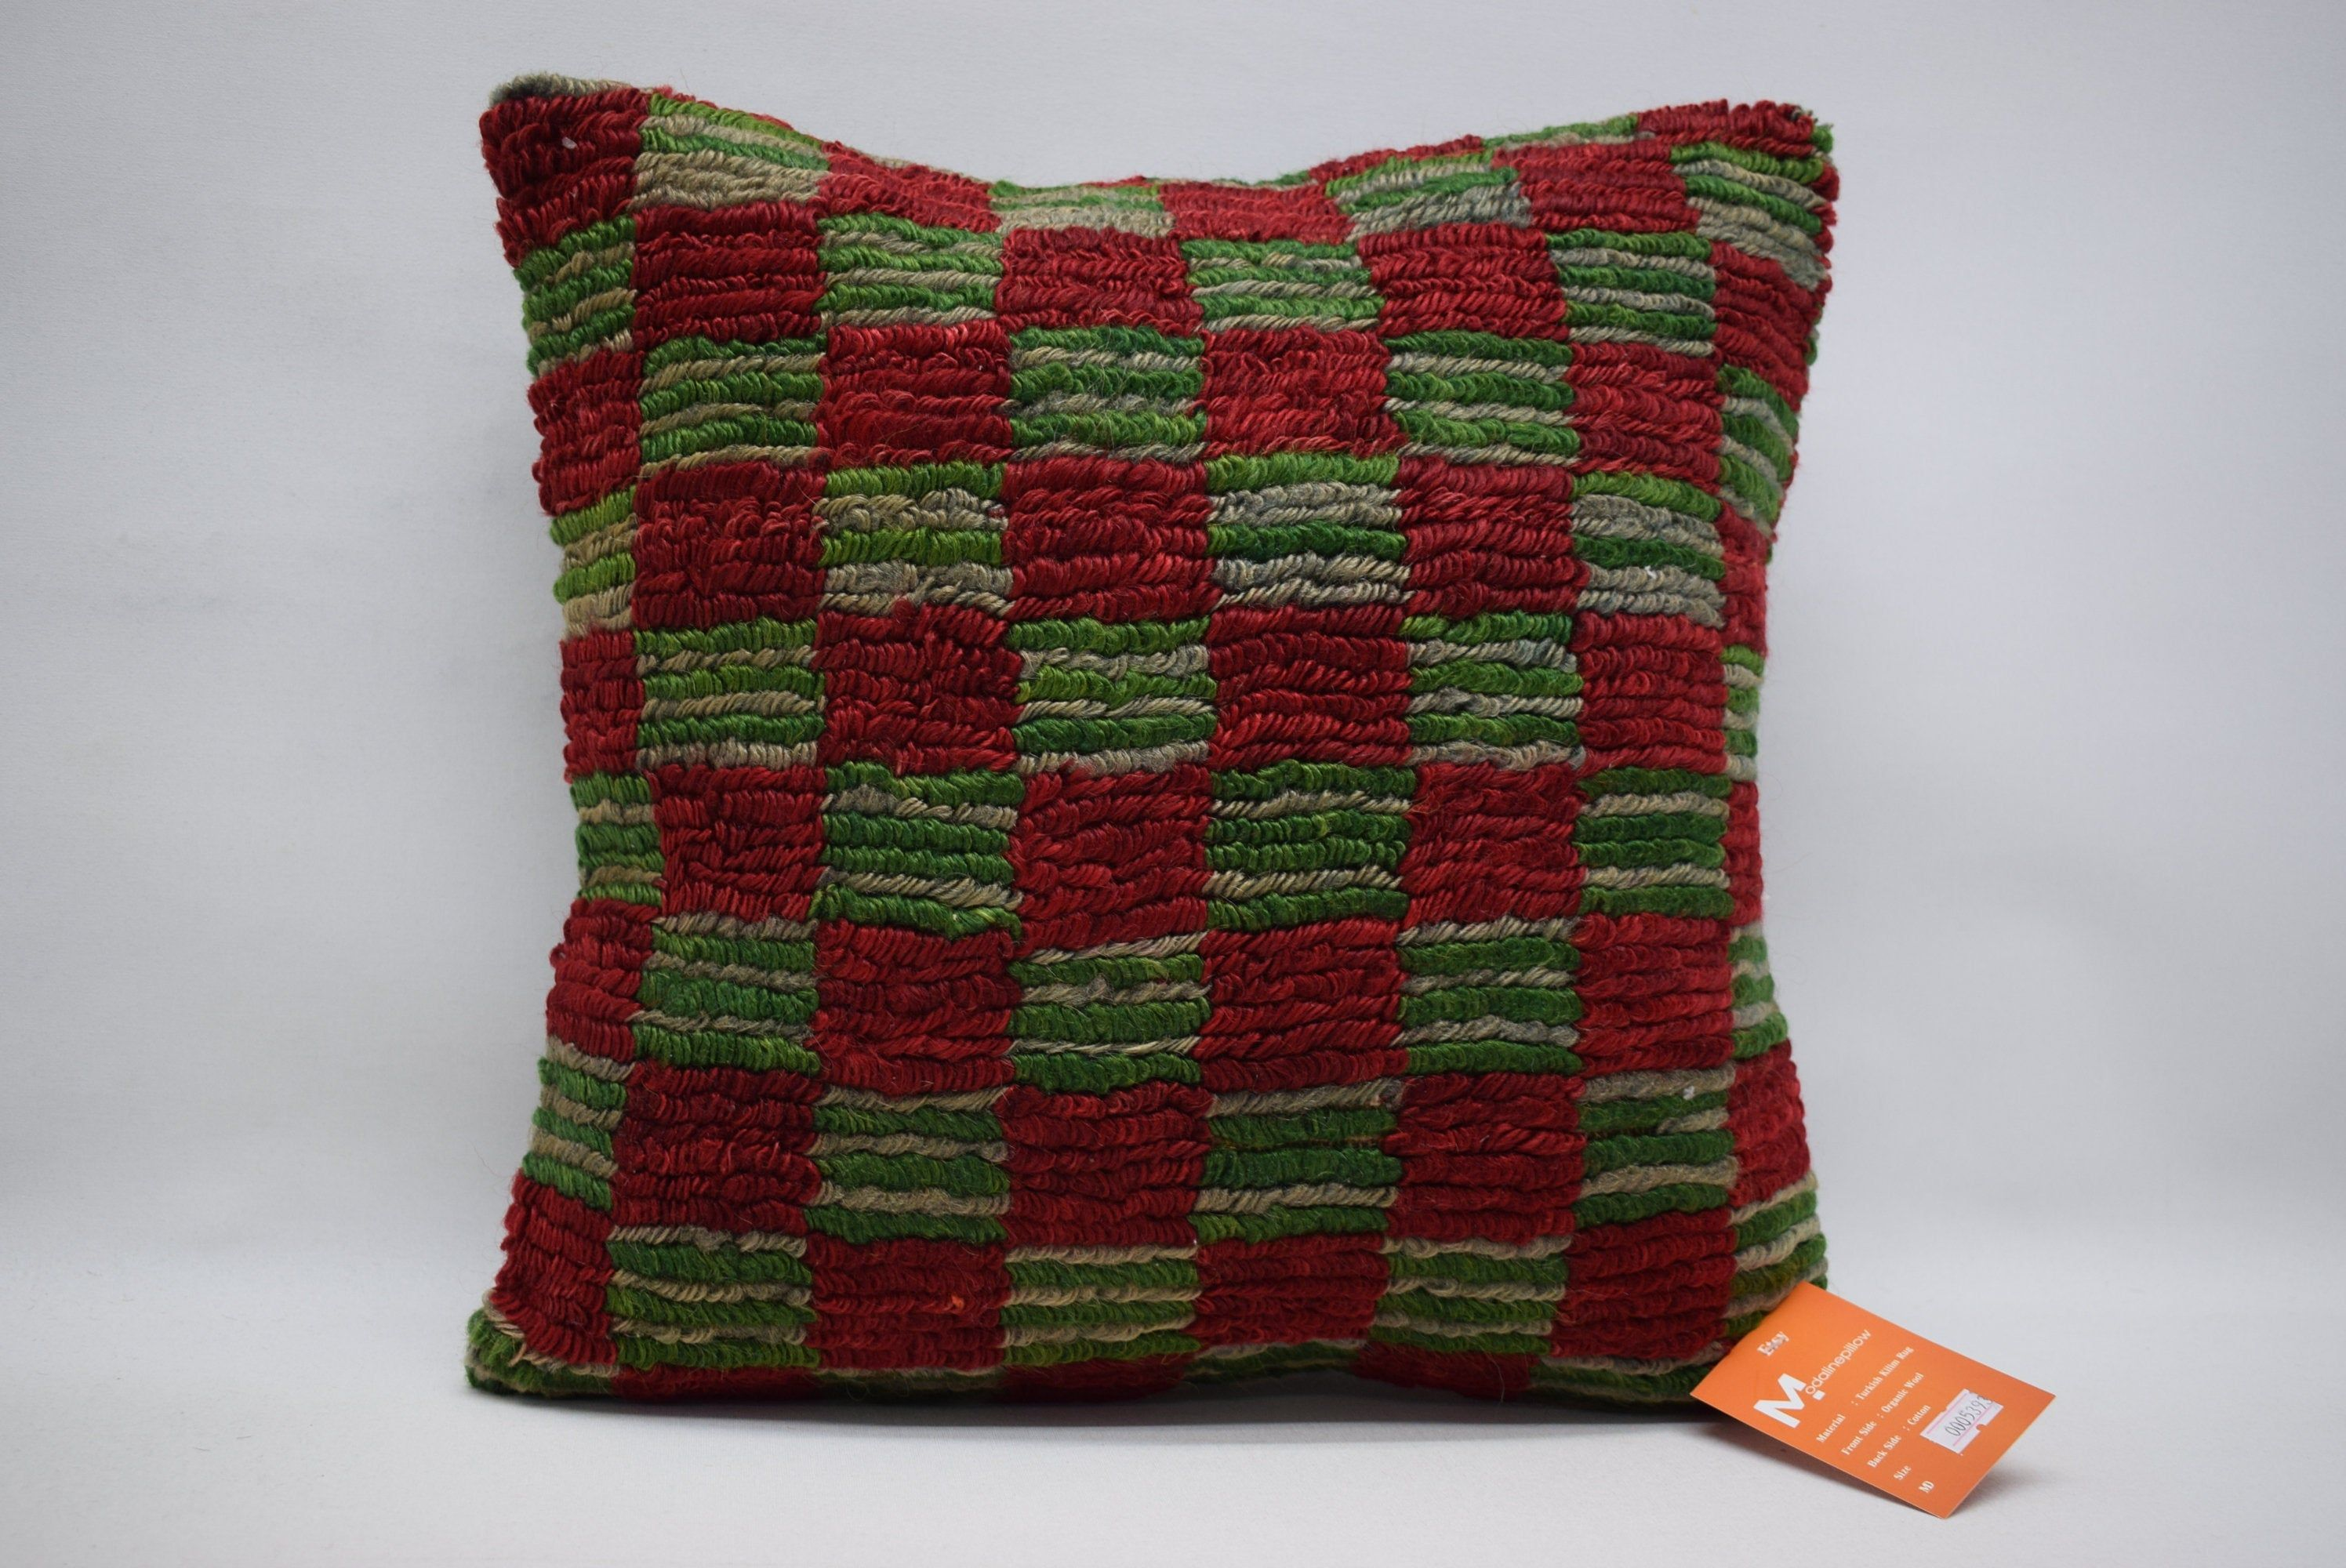 Kilim pillow / throw pillow / turkish kilim pillow / floor pillow 16x16 handwoven pillow / boho decor / kilim cushions 05393